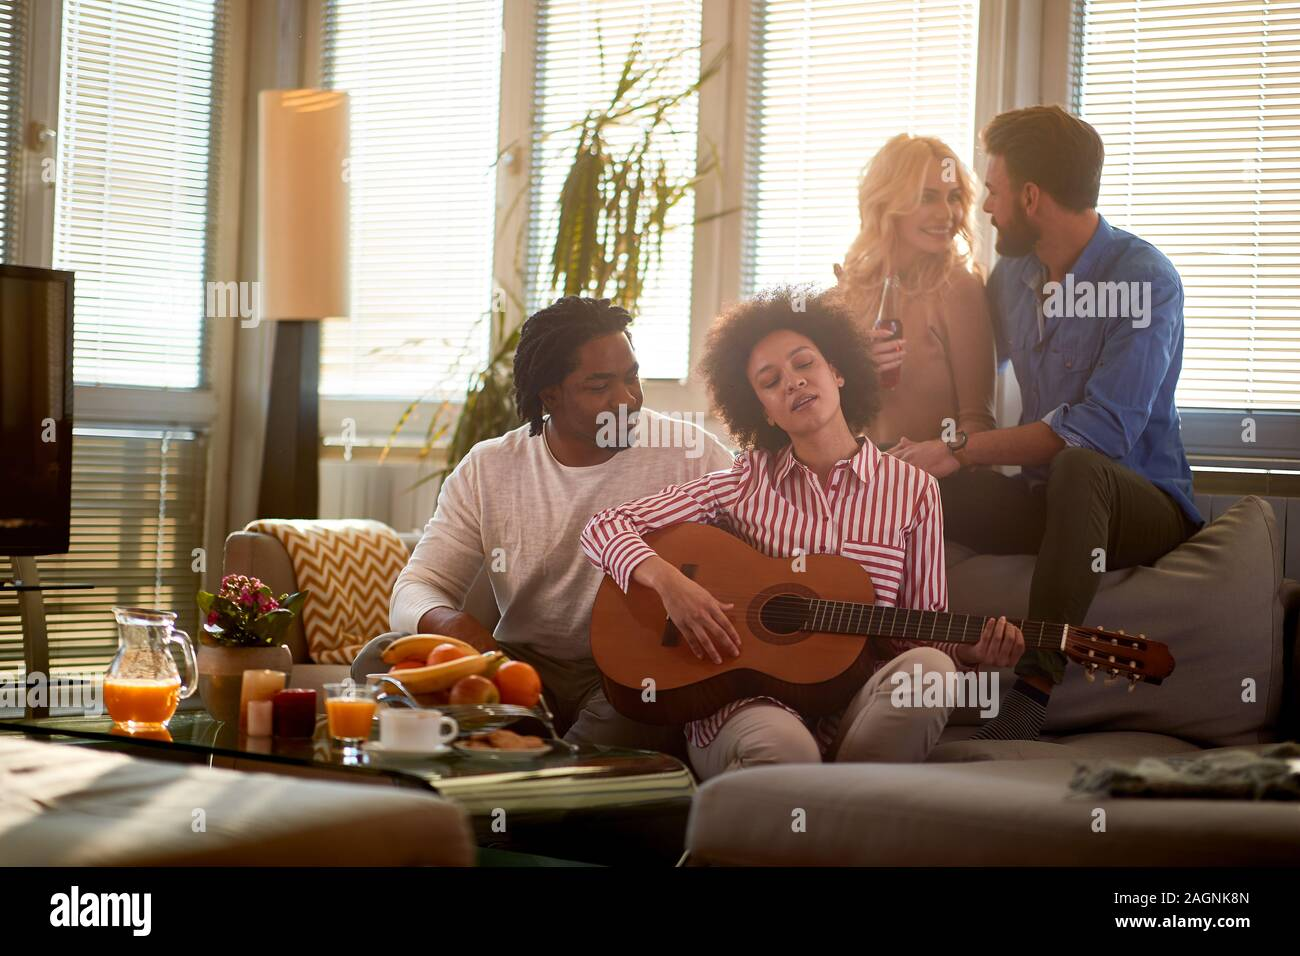 Young girl play on guitar and friends listening her Stock Photo